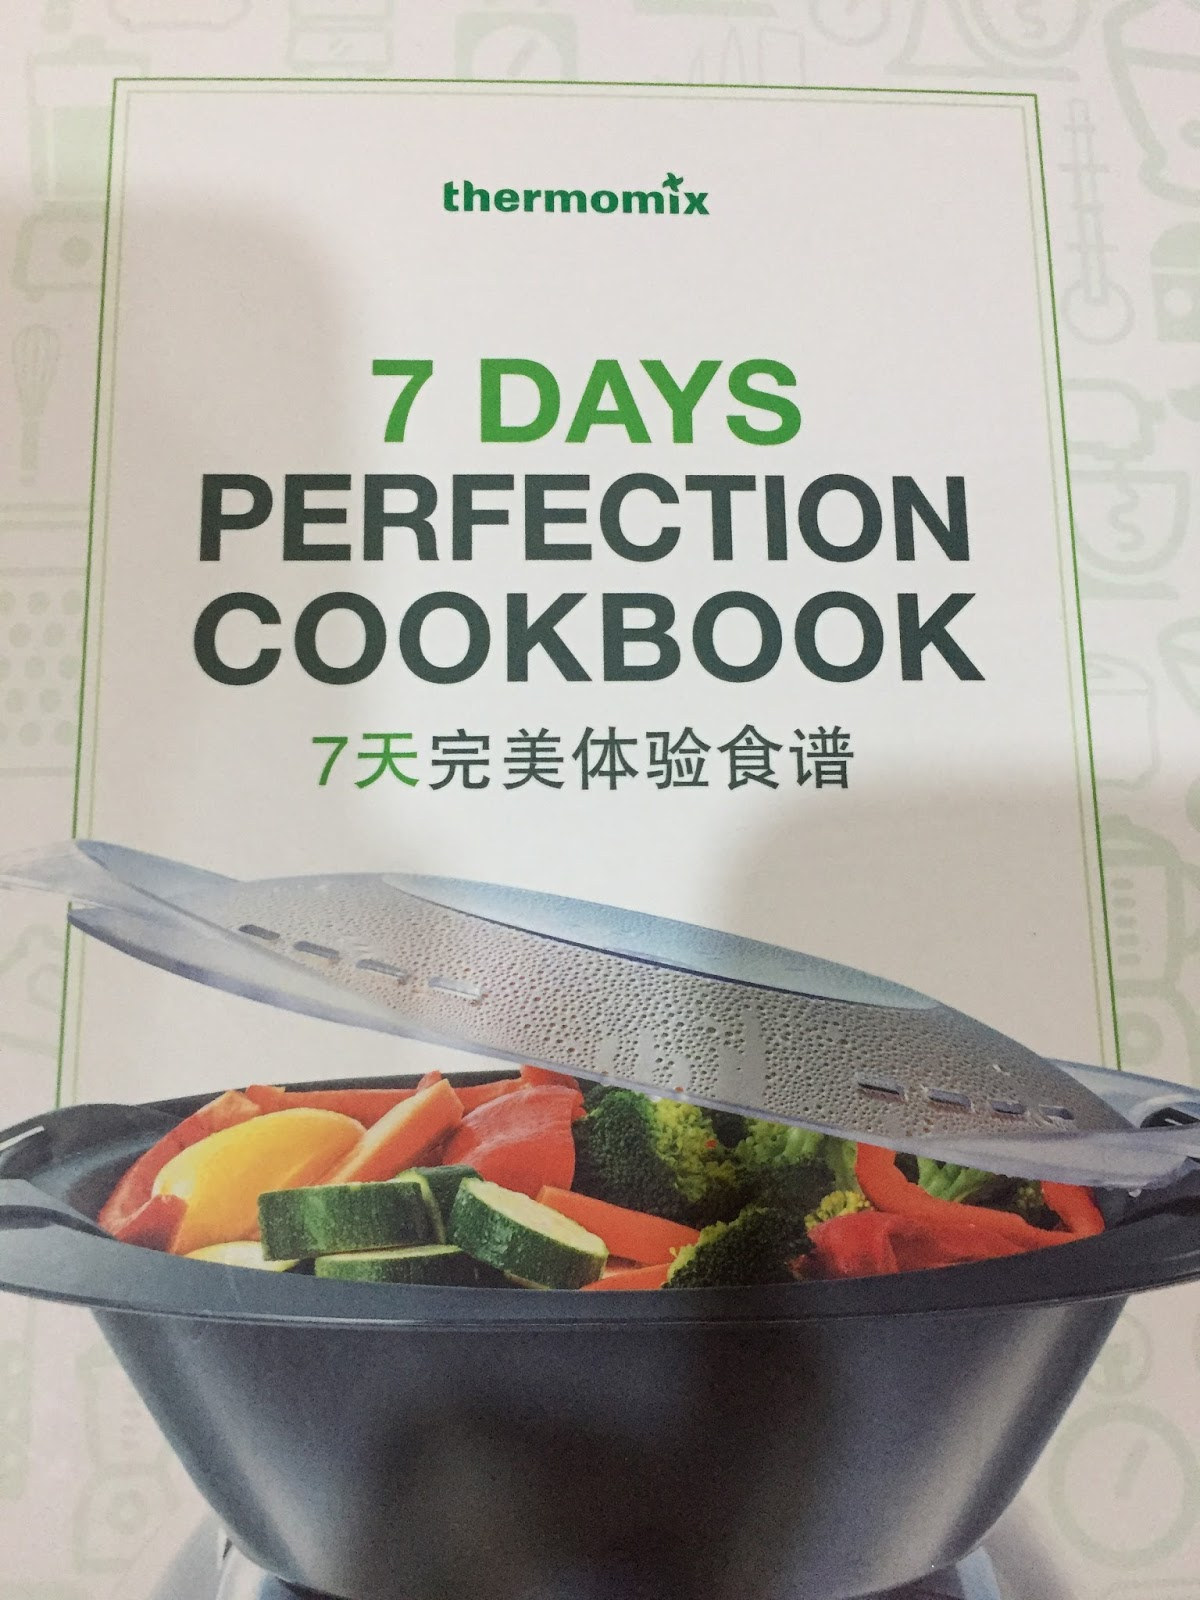 Ann paul recipe collection thermomix book c 7 days perfection cookbook thermomix book c 7 days perfection cookbook forumfinder Gallery